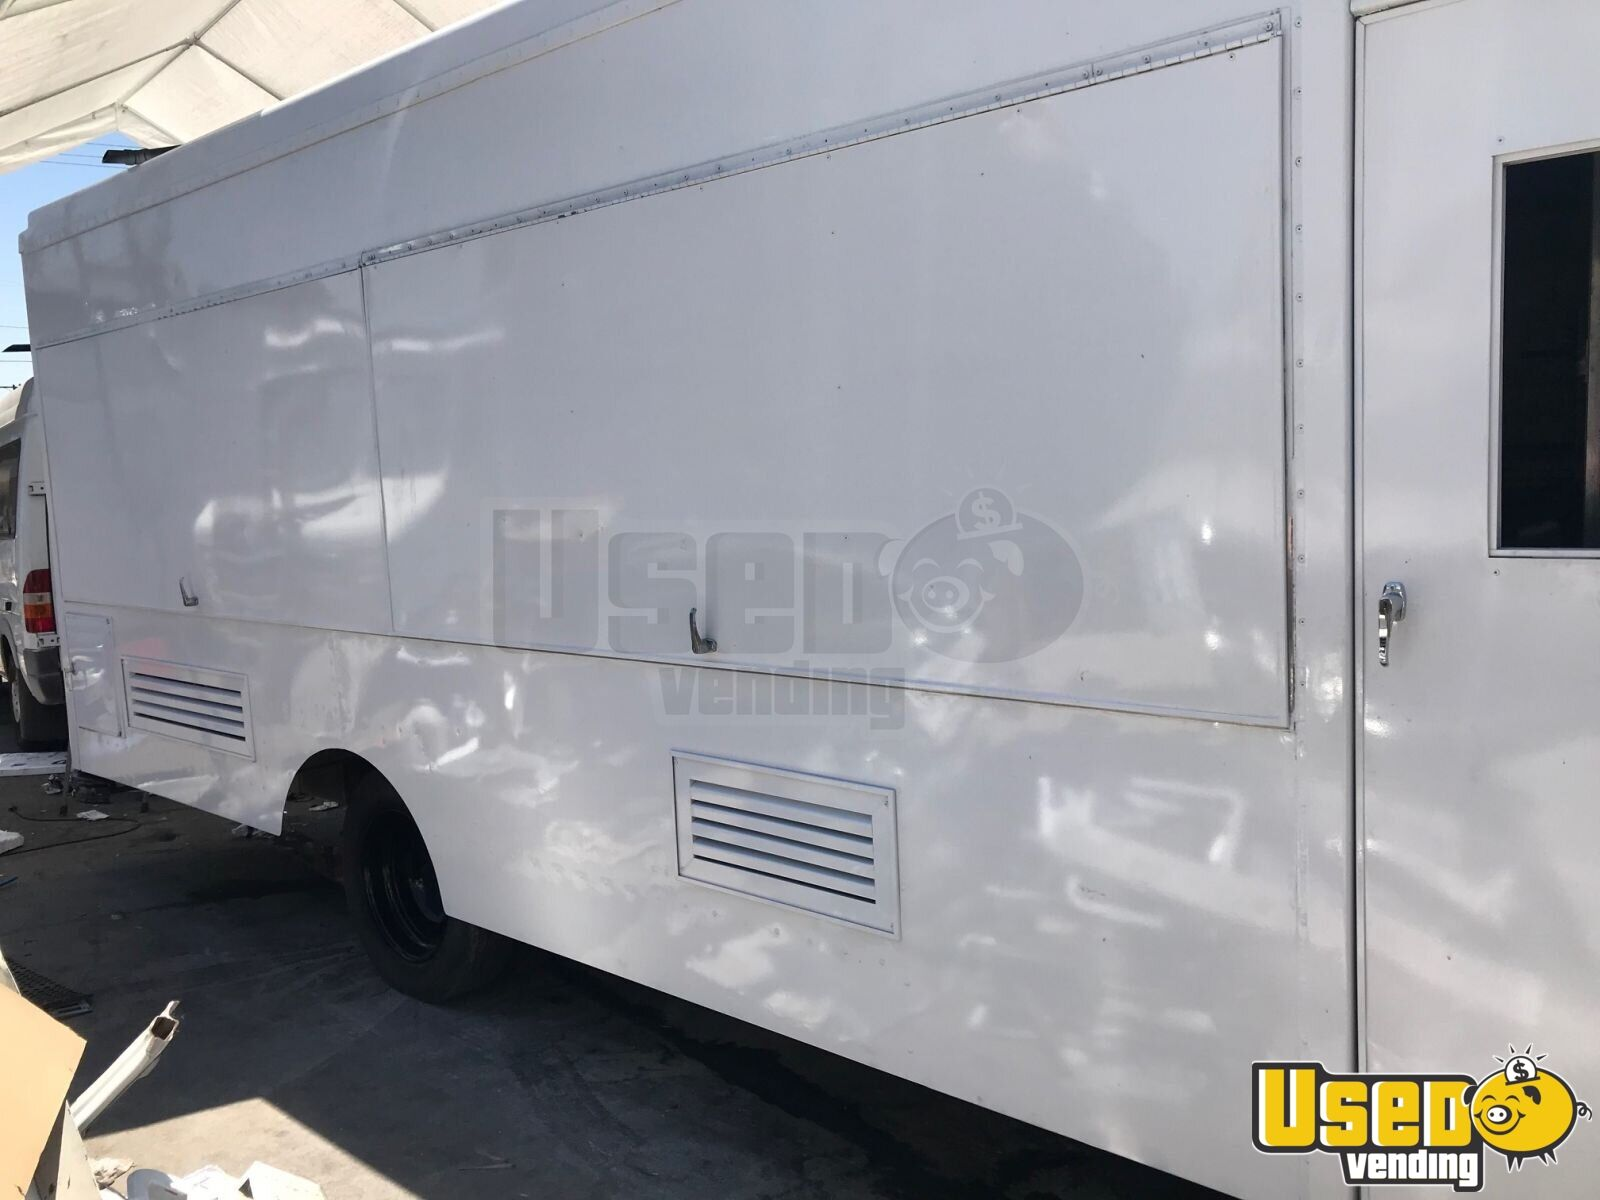 1995 Chevrolet Tx All-purpose Food Truck Air Conditioning California Diesel Engine for Sale - 2